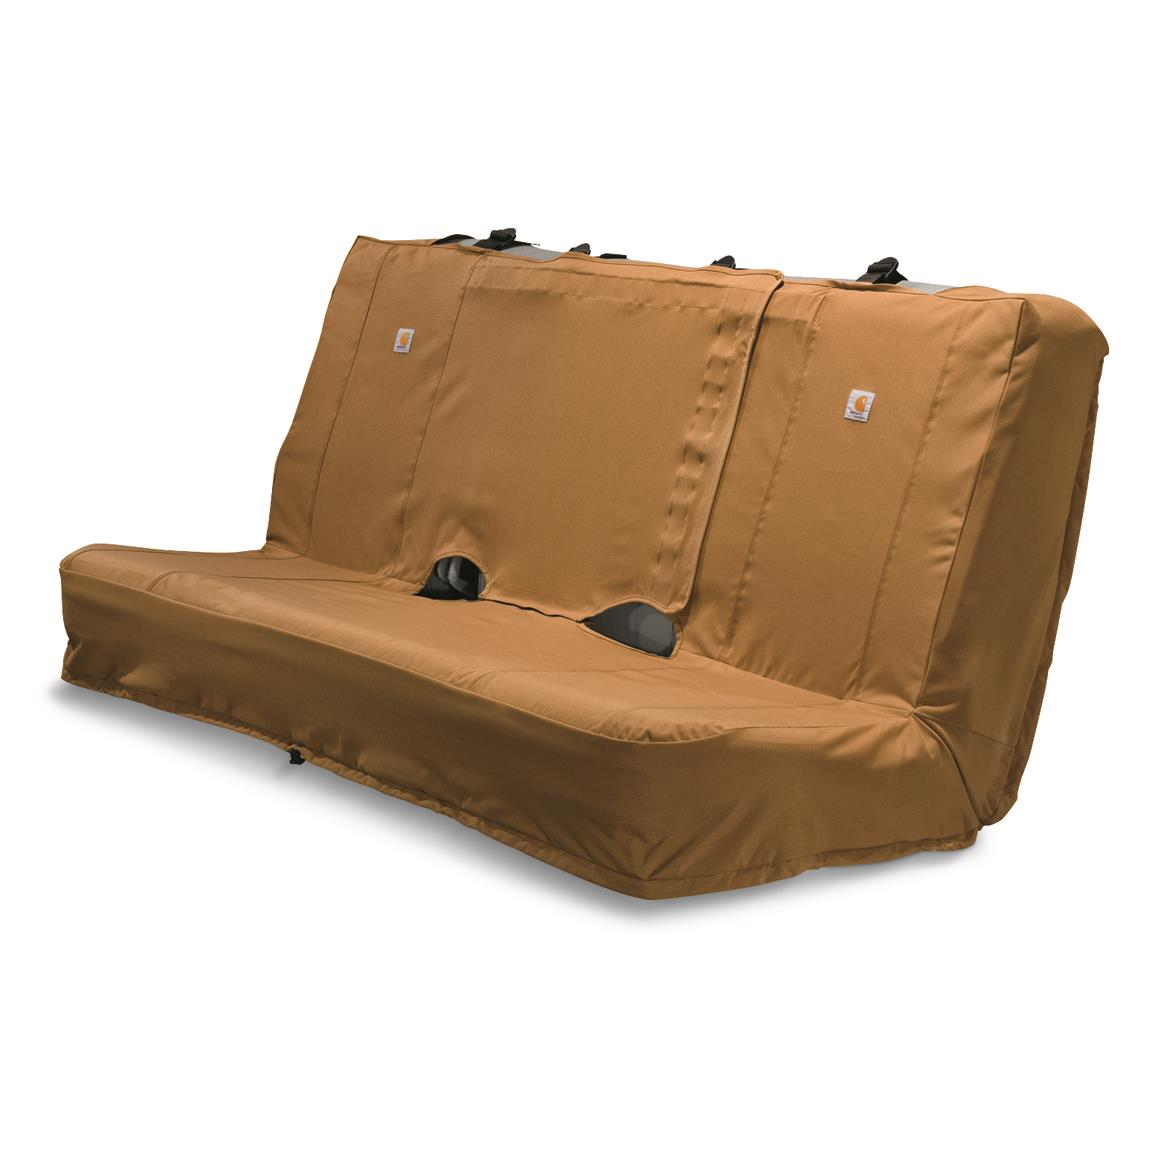 Carhartt Universal Bench Seat Cover, Carhartt® Brown